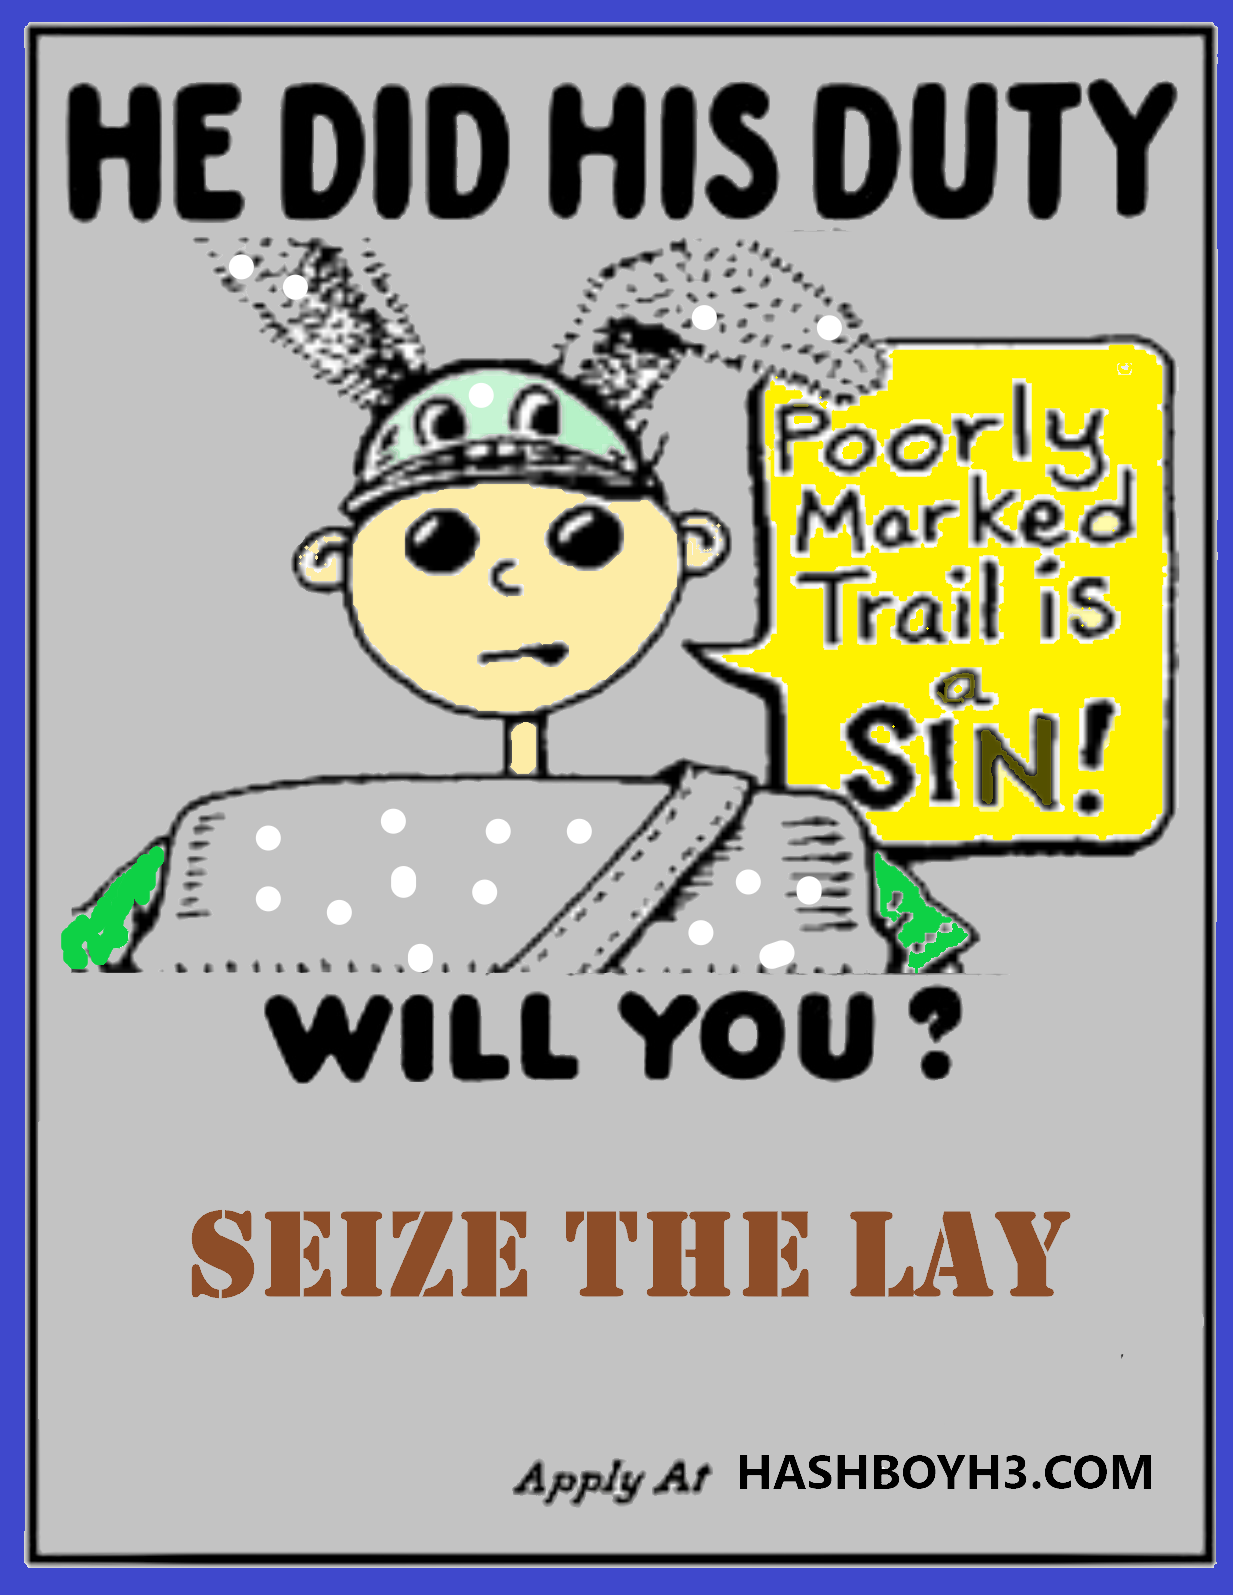 Hash Boy Do Your Duty Poster - Seize the Lay